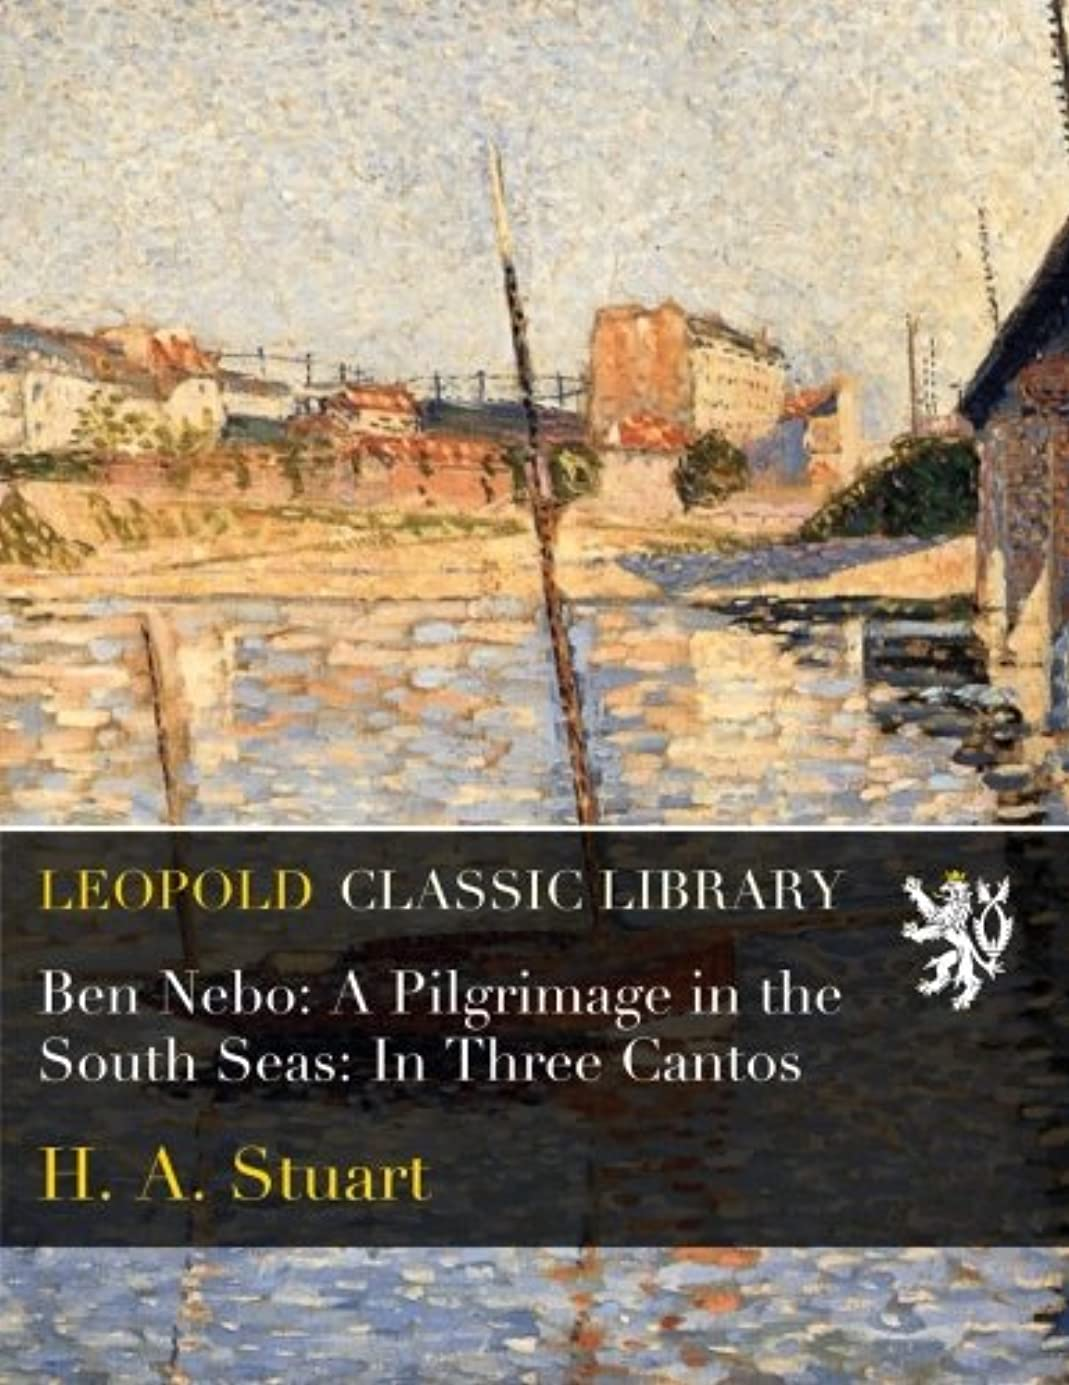 良さ彼らのラッカスBen Nebo: A Pilgrimage in the South Seas: In Three Cantos